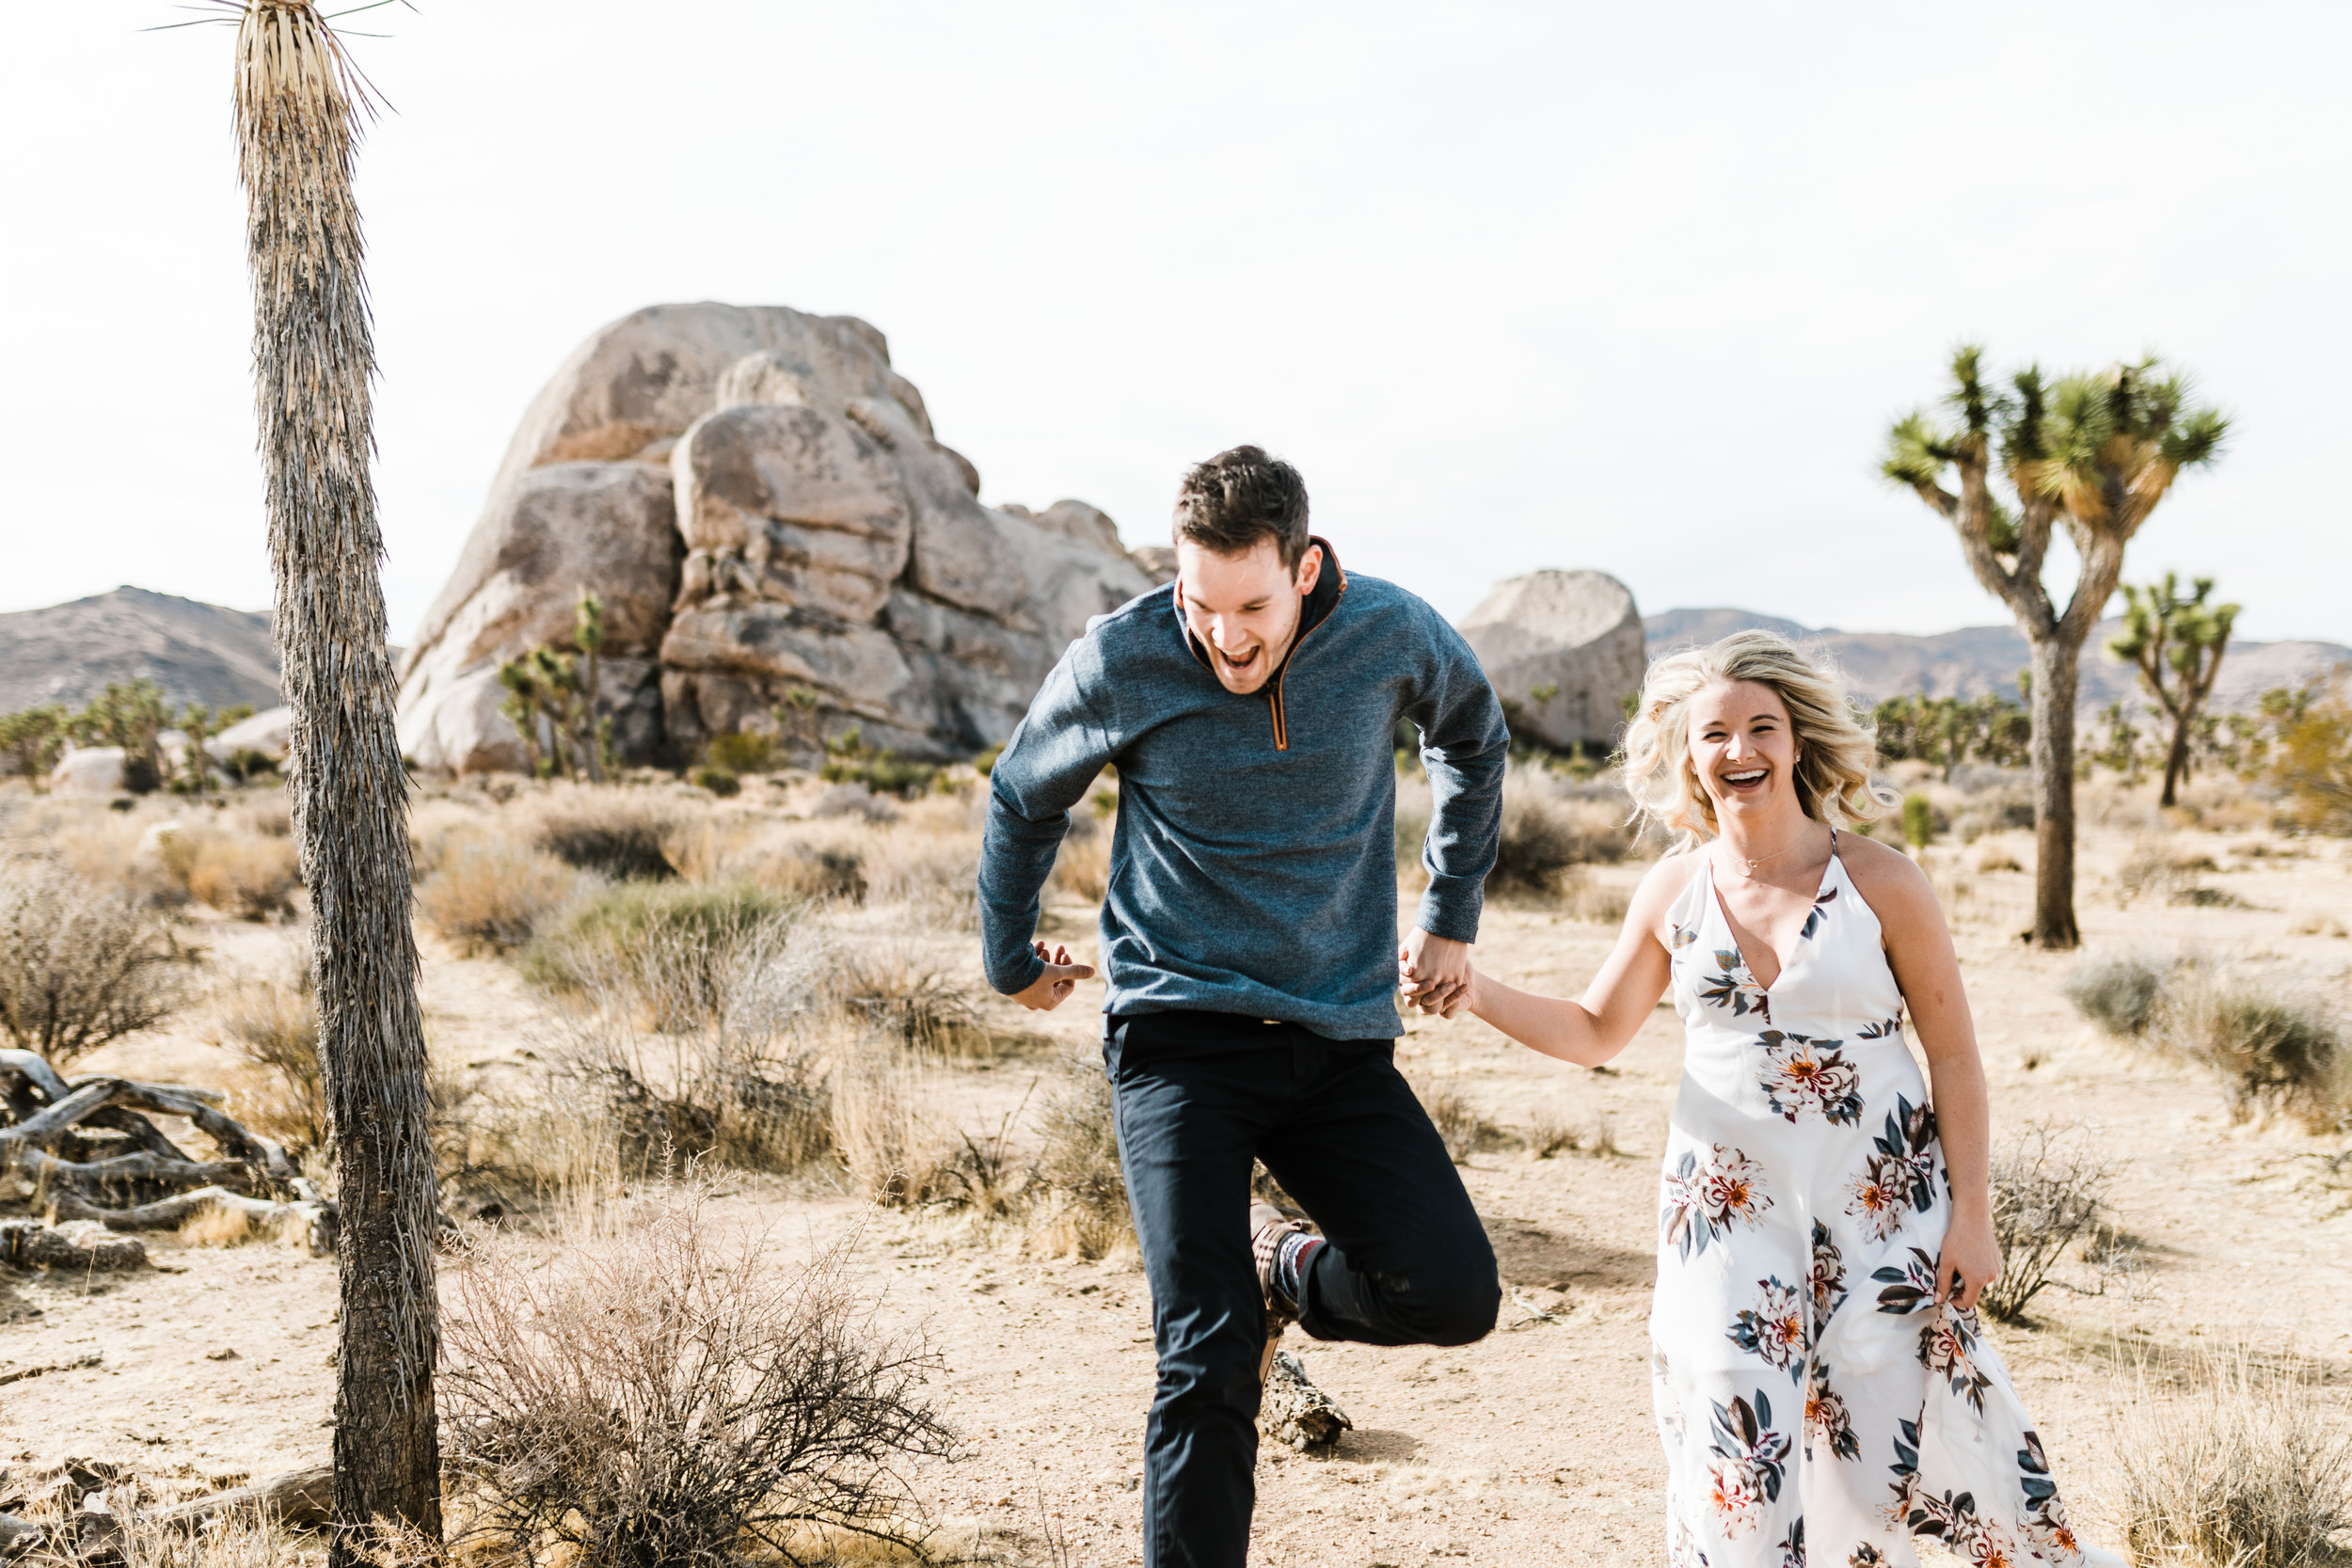 Dano&Andrew-JoshuaTreeEngagementSession1